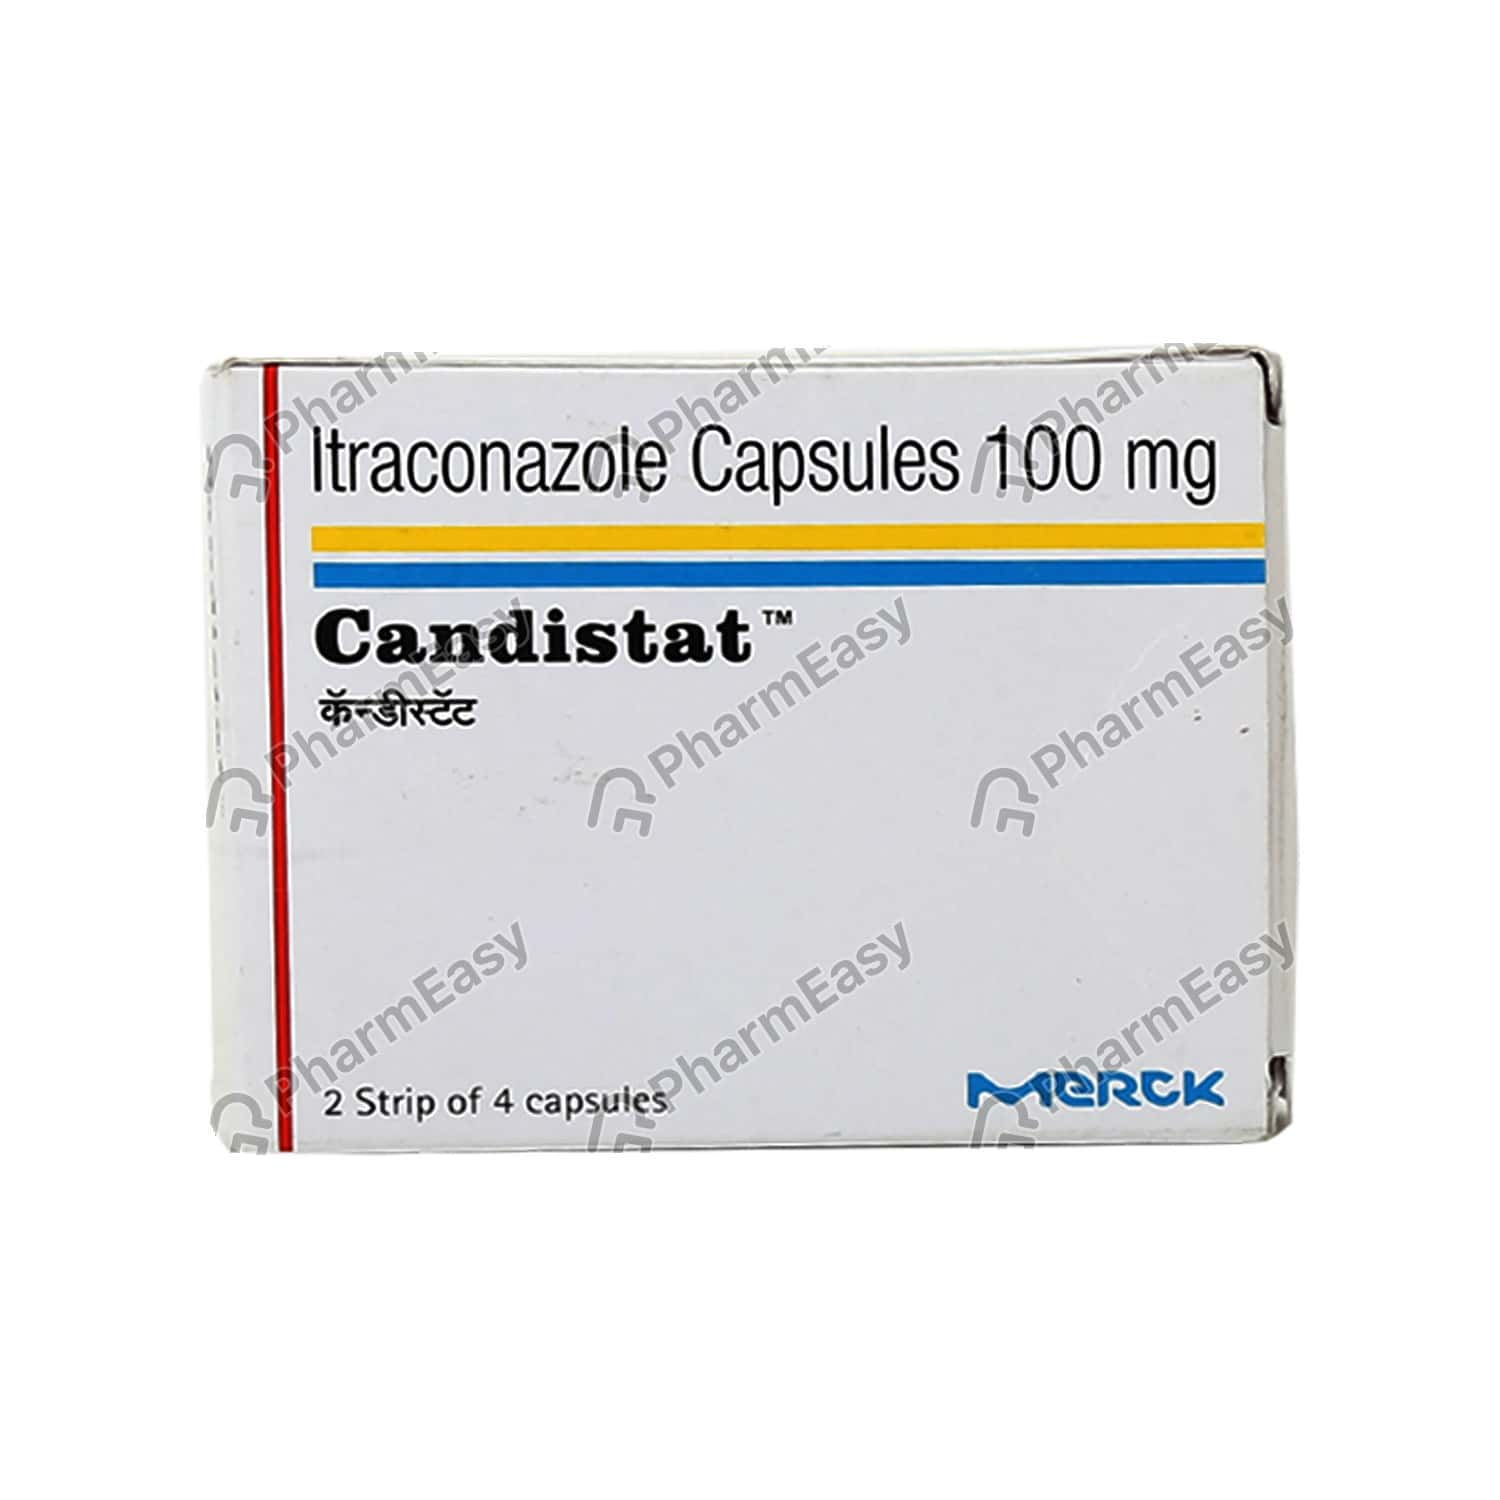 Candistat 100mg Capsule